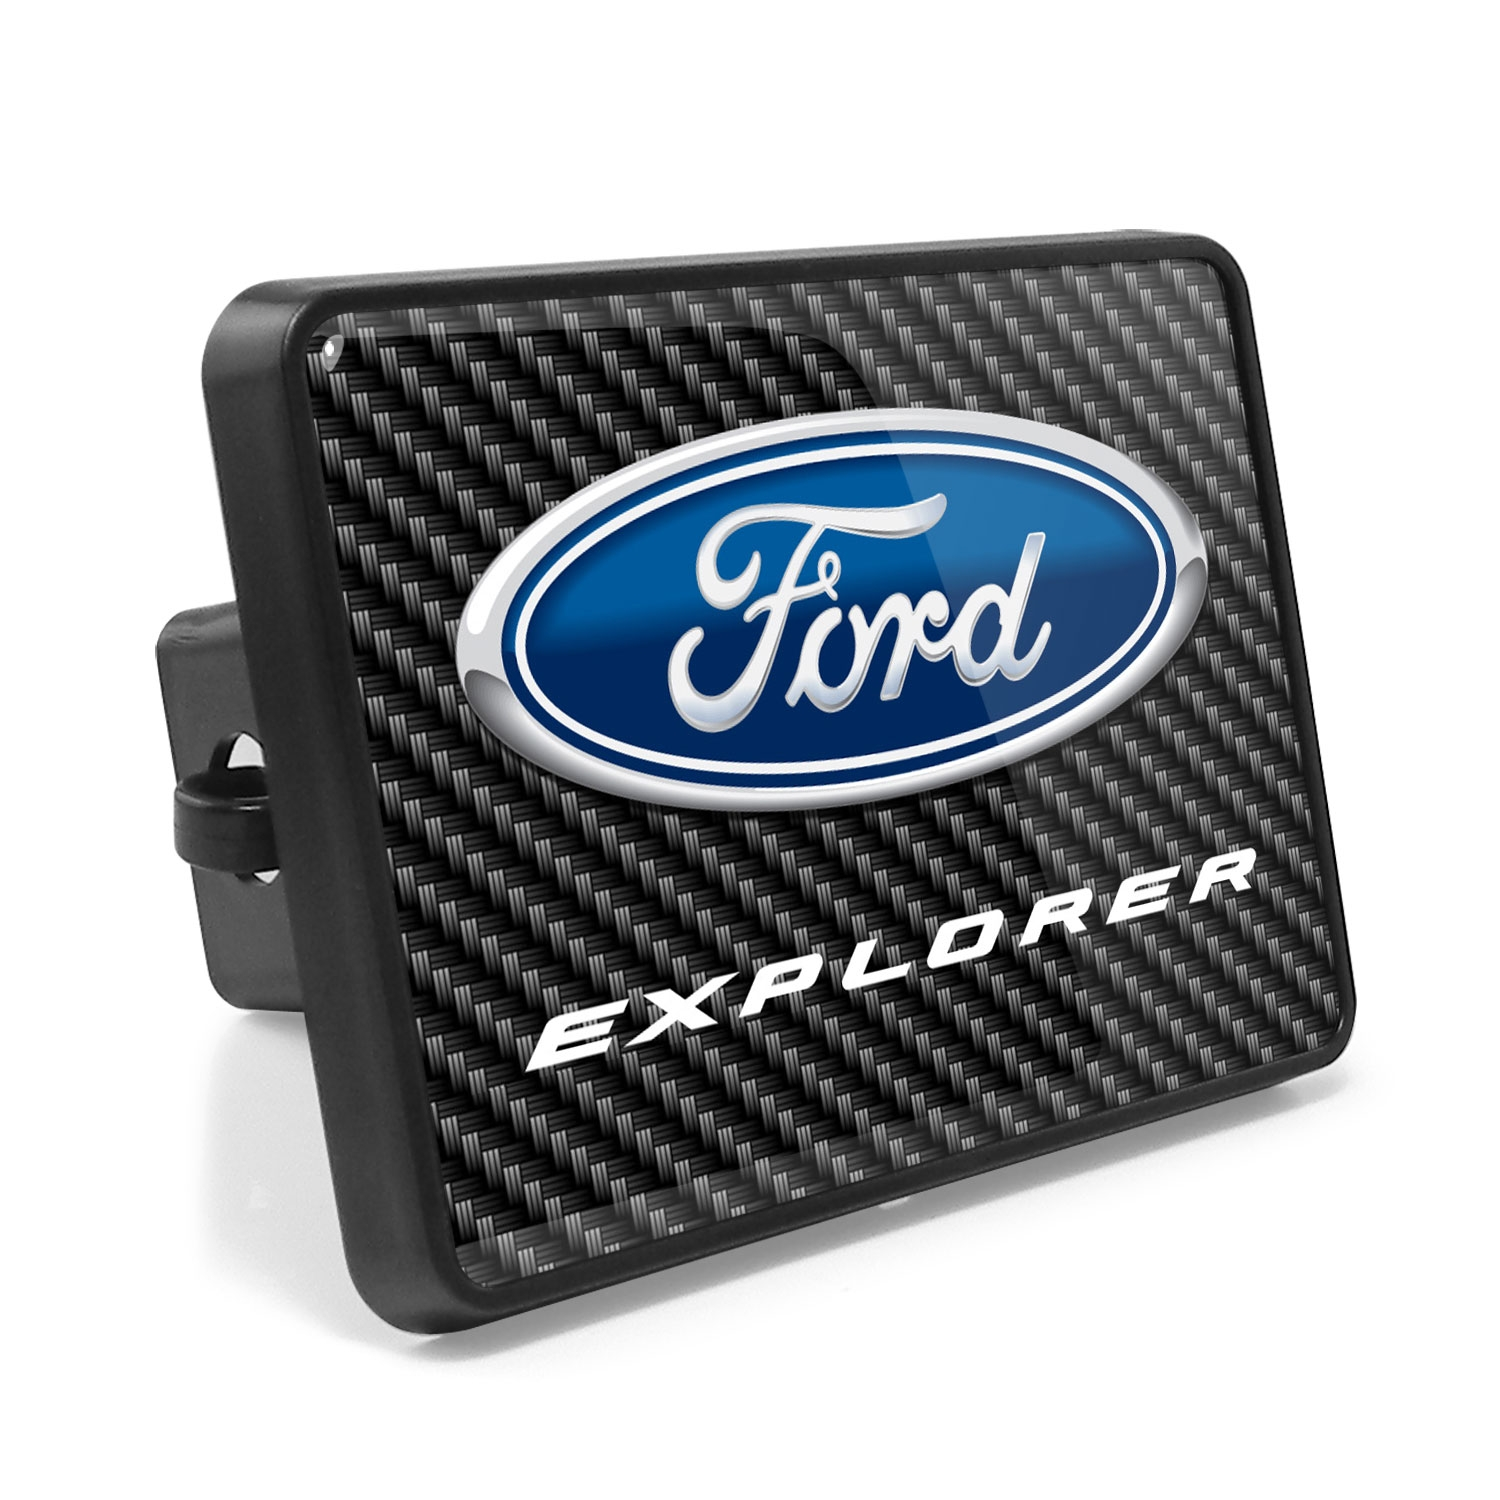 Ford Explorer Carbon Fiber Look UV Graphic Metal Plate on ABS Plastic 2 inch Tow Hitch Cover